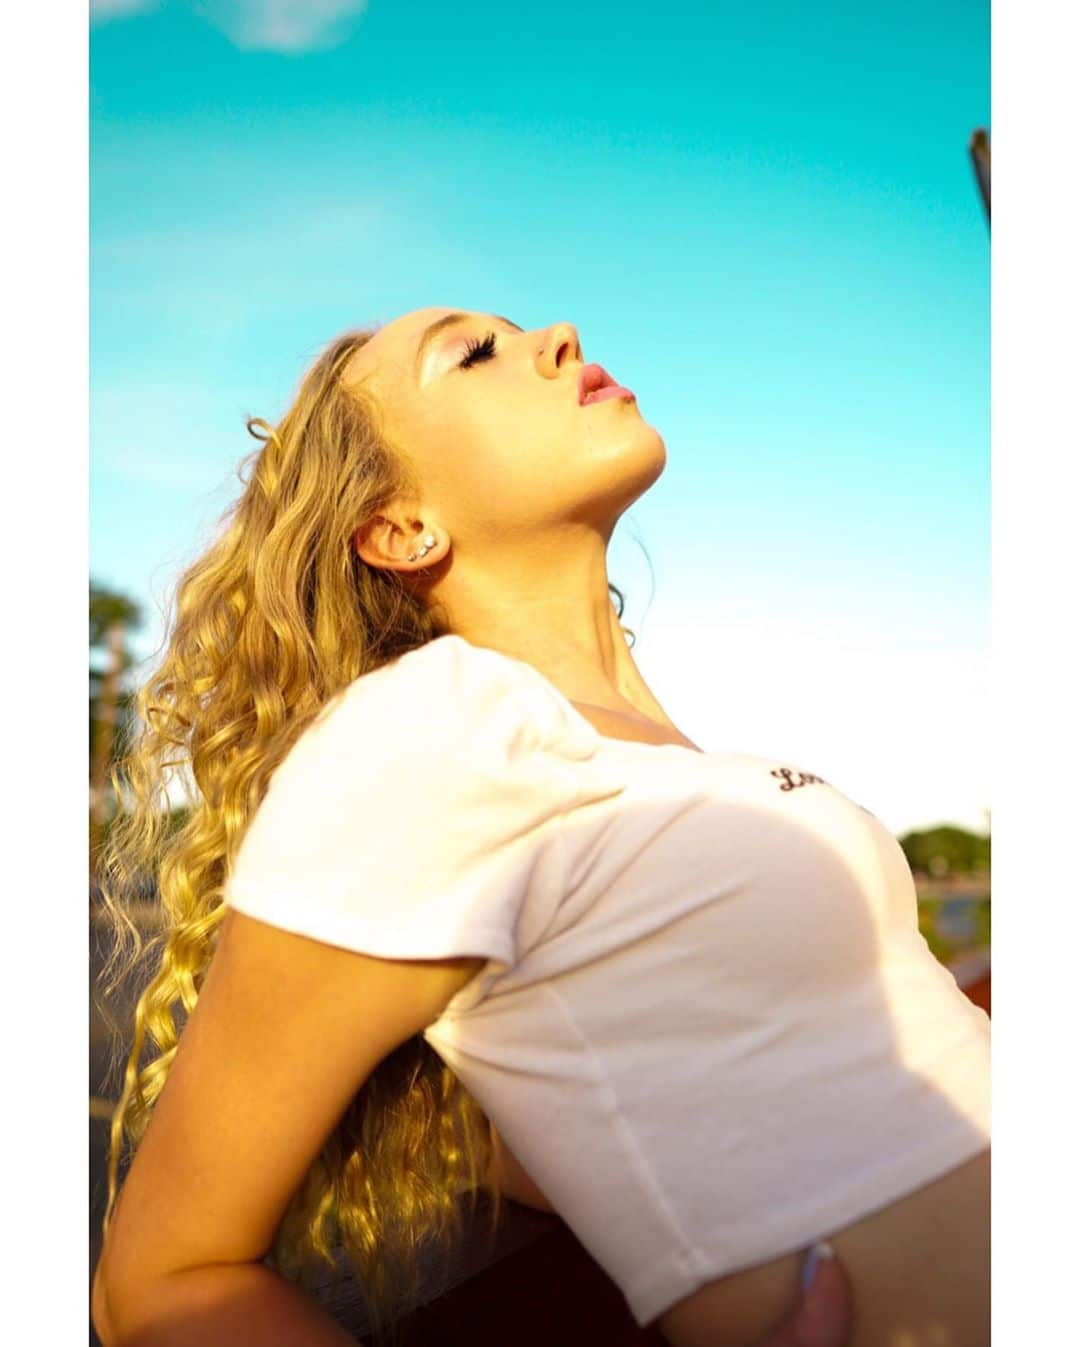 Beautiful young blonde American model Alyssa Hensley (asap.ally) wearing a crop white t-shirtsoaking up the sun on summer day